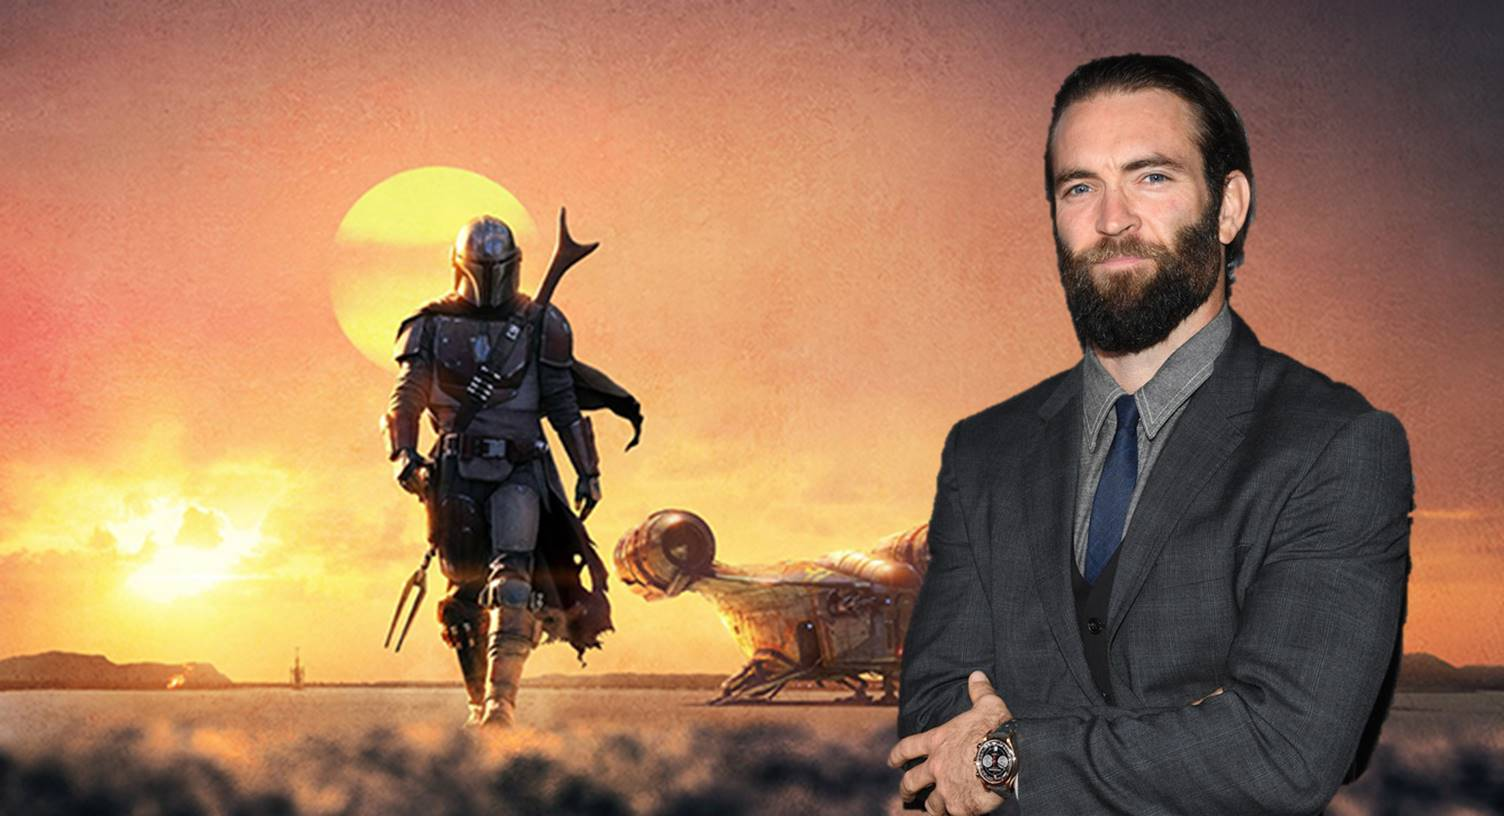 The Mandalorian Brings More Action By Adding Sam Hargrave, Director of Extraction